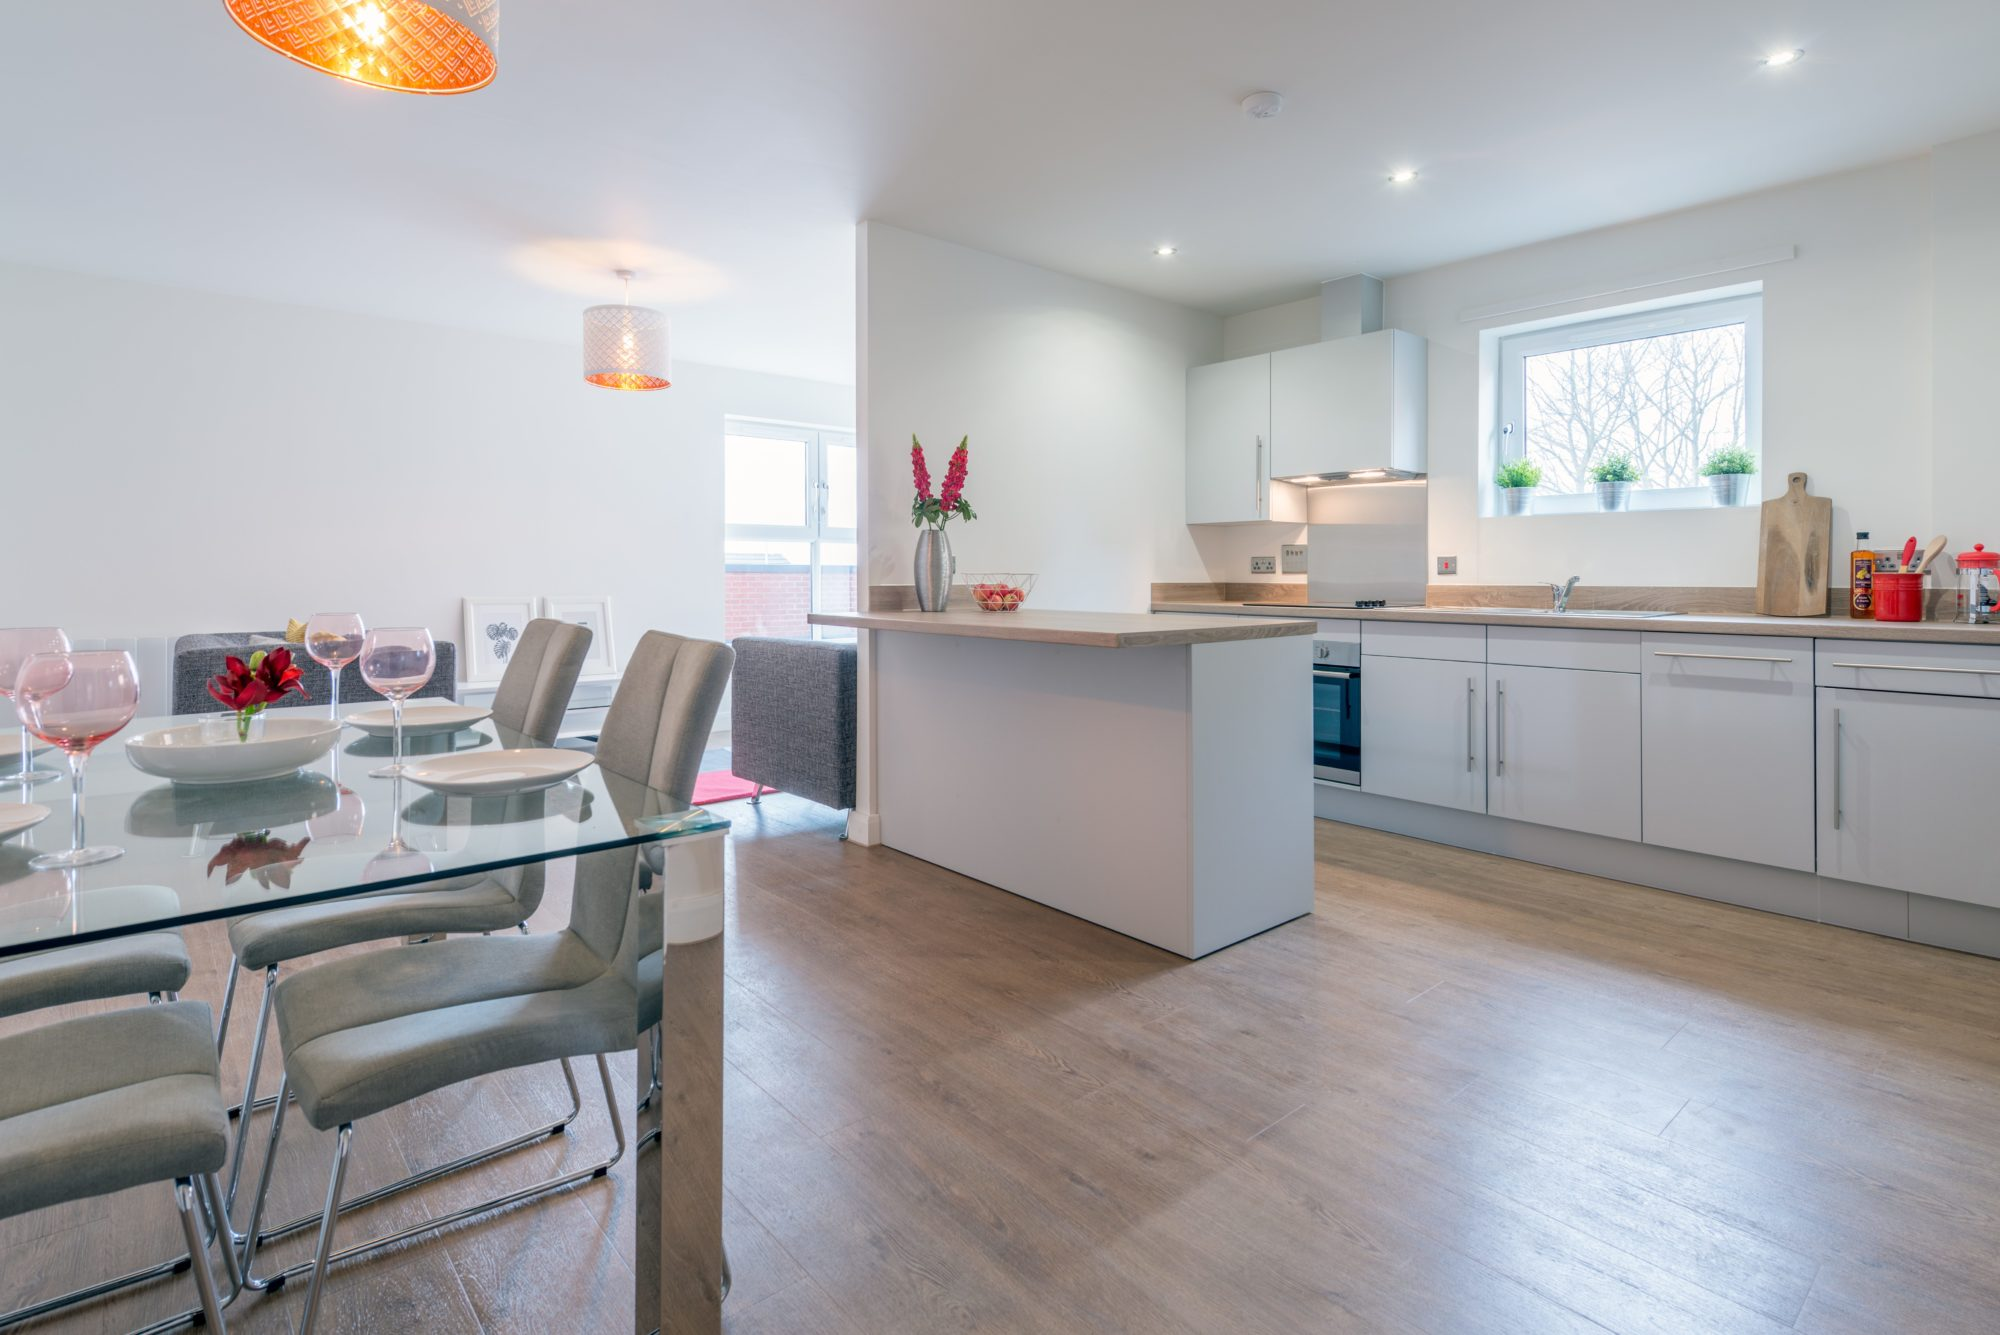 The Gardens: High-quality, modern rental apartments in Leeds